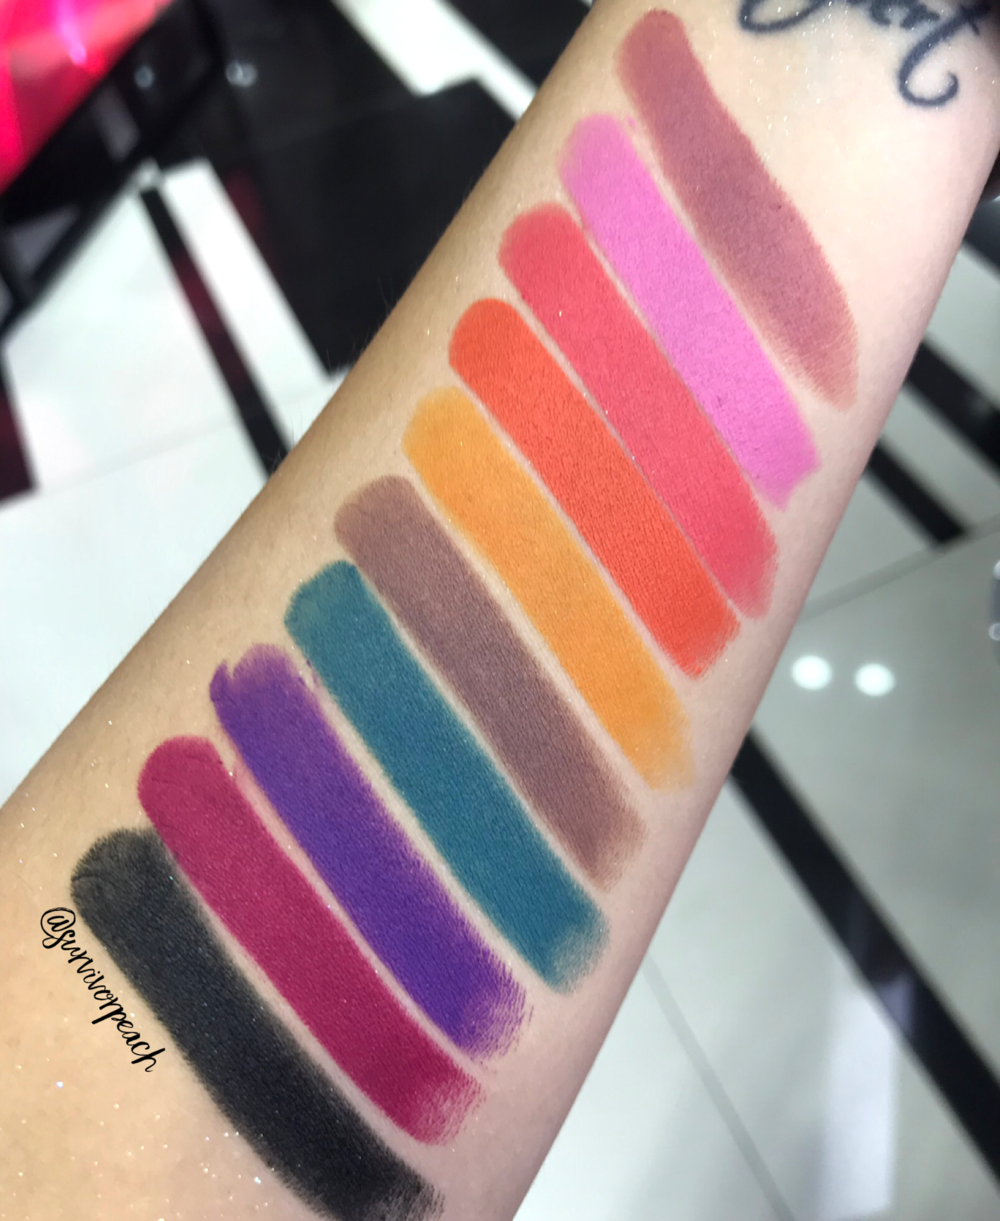 Swatches of the Fenty Beauty Mattemoiselle Plush Matte Lipstick in Thicc, Ballerina Blackout, Dragon Mami, Tiger Tini, Pumpkin Rose, I Quit, Tucks and Caicos, Violet Fury, Flamingo Acid, and F'N Black